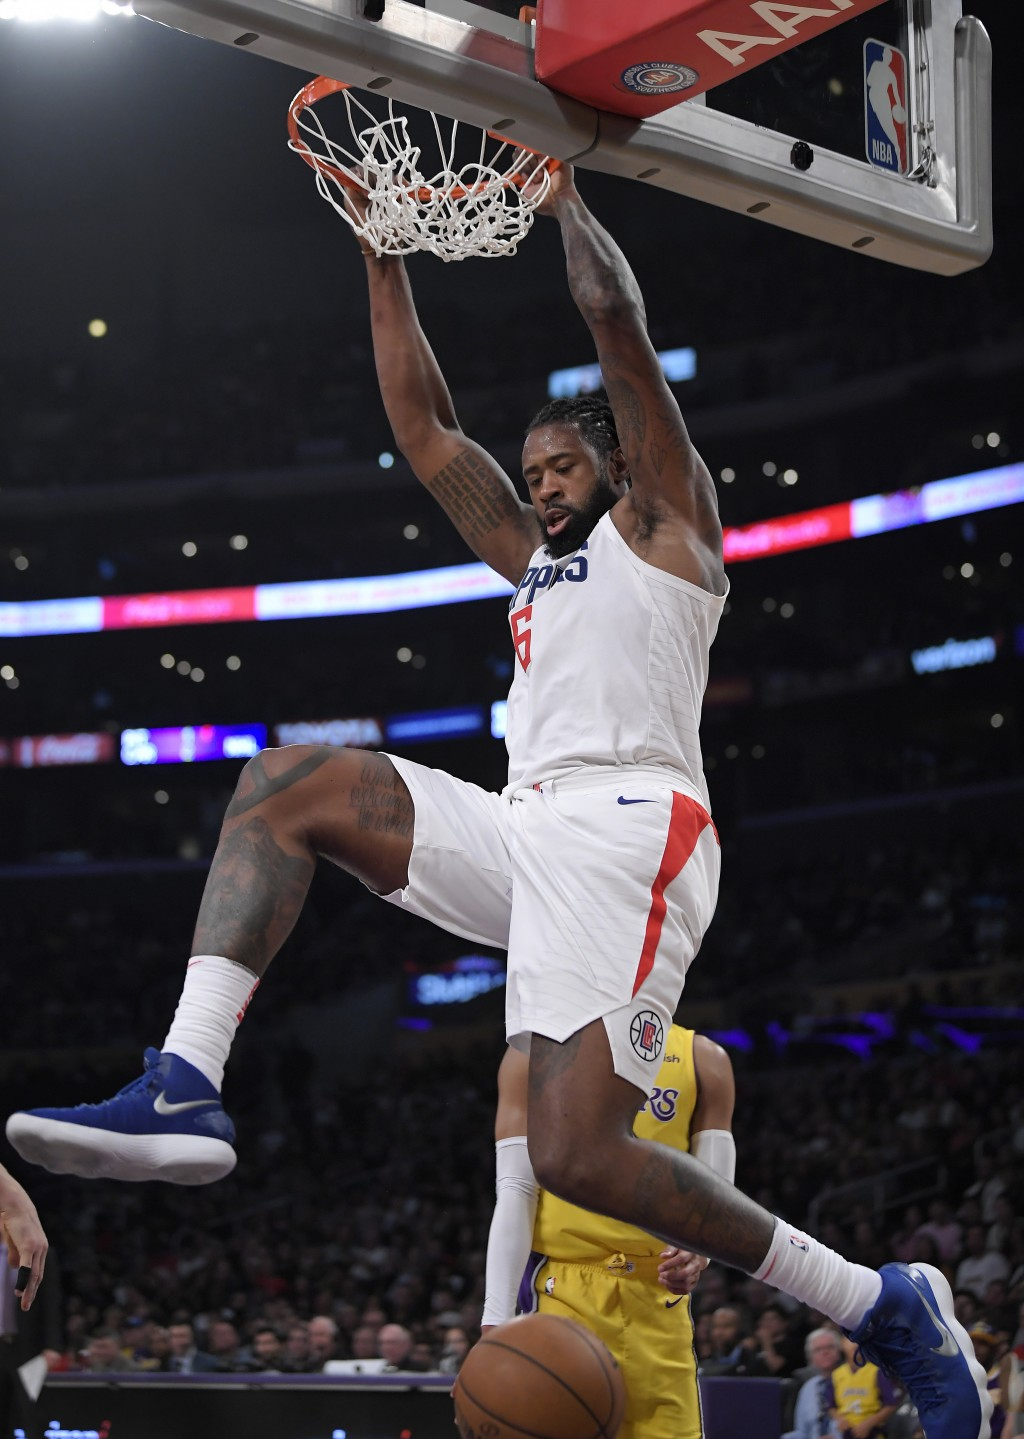 Los Angeles Clippers center DeAndre Jordan dunks during the first half of the team's NBA basketball game against the Los Angeles Lakers, Friday, Dec. ...